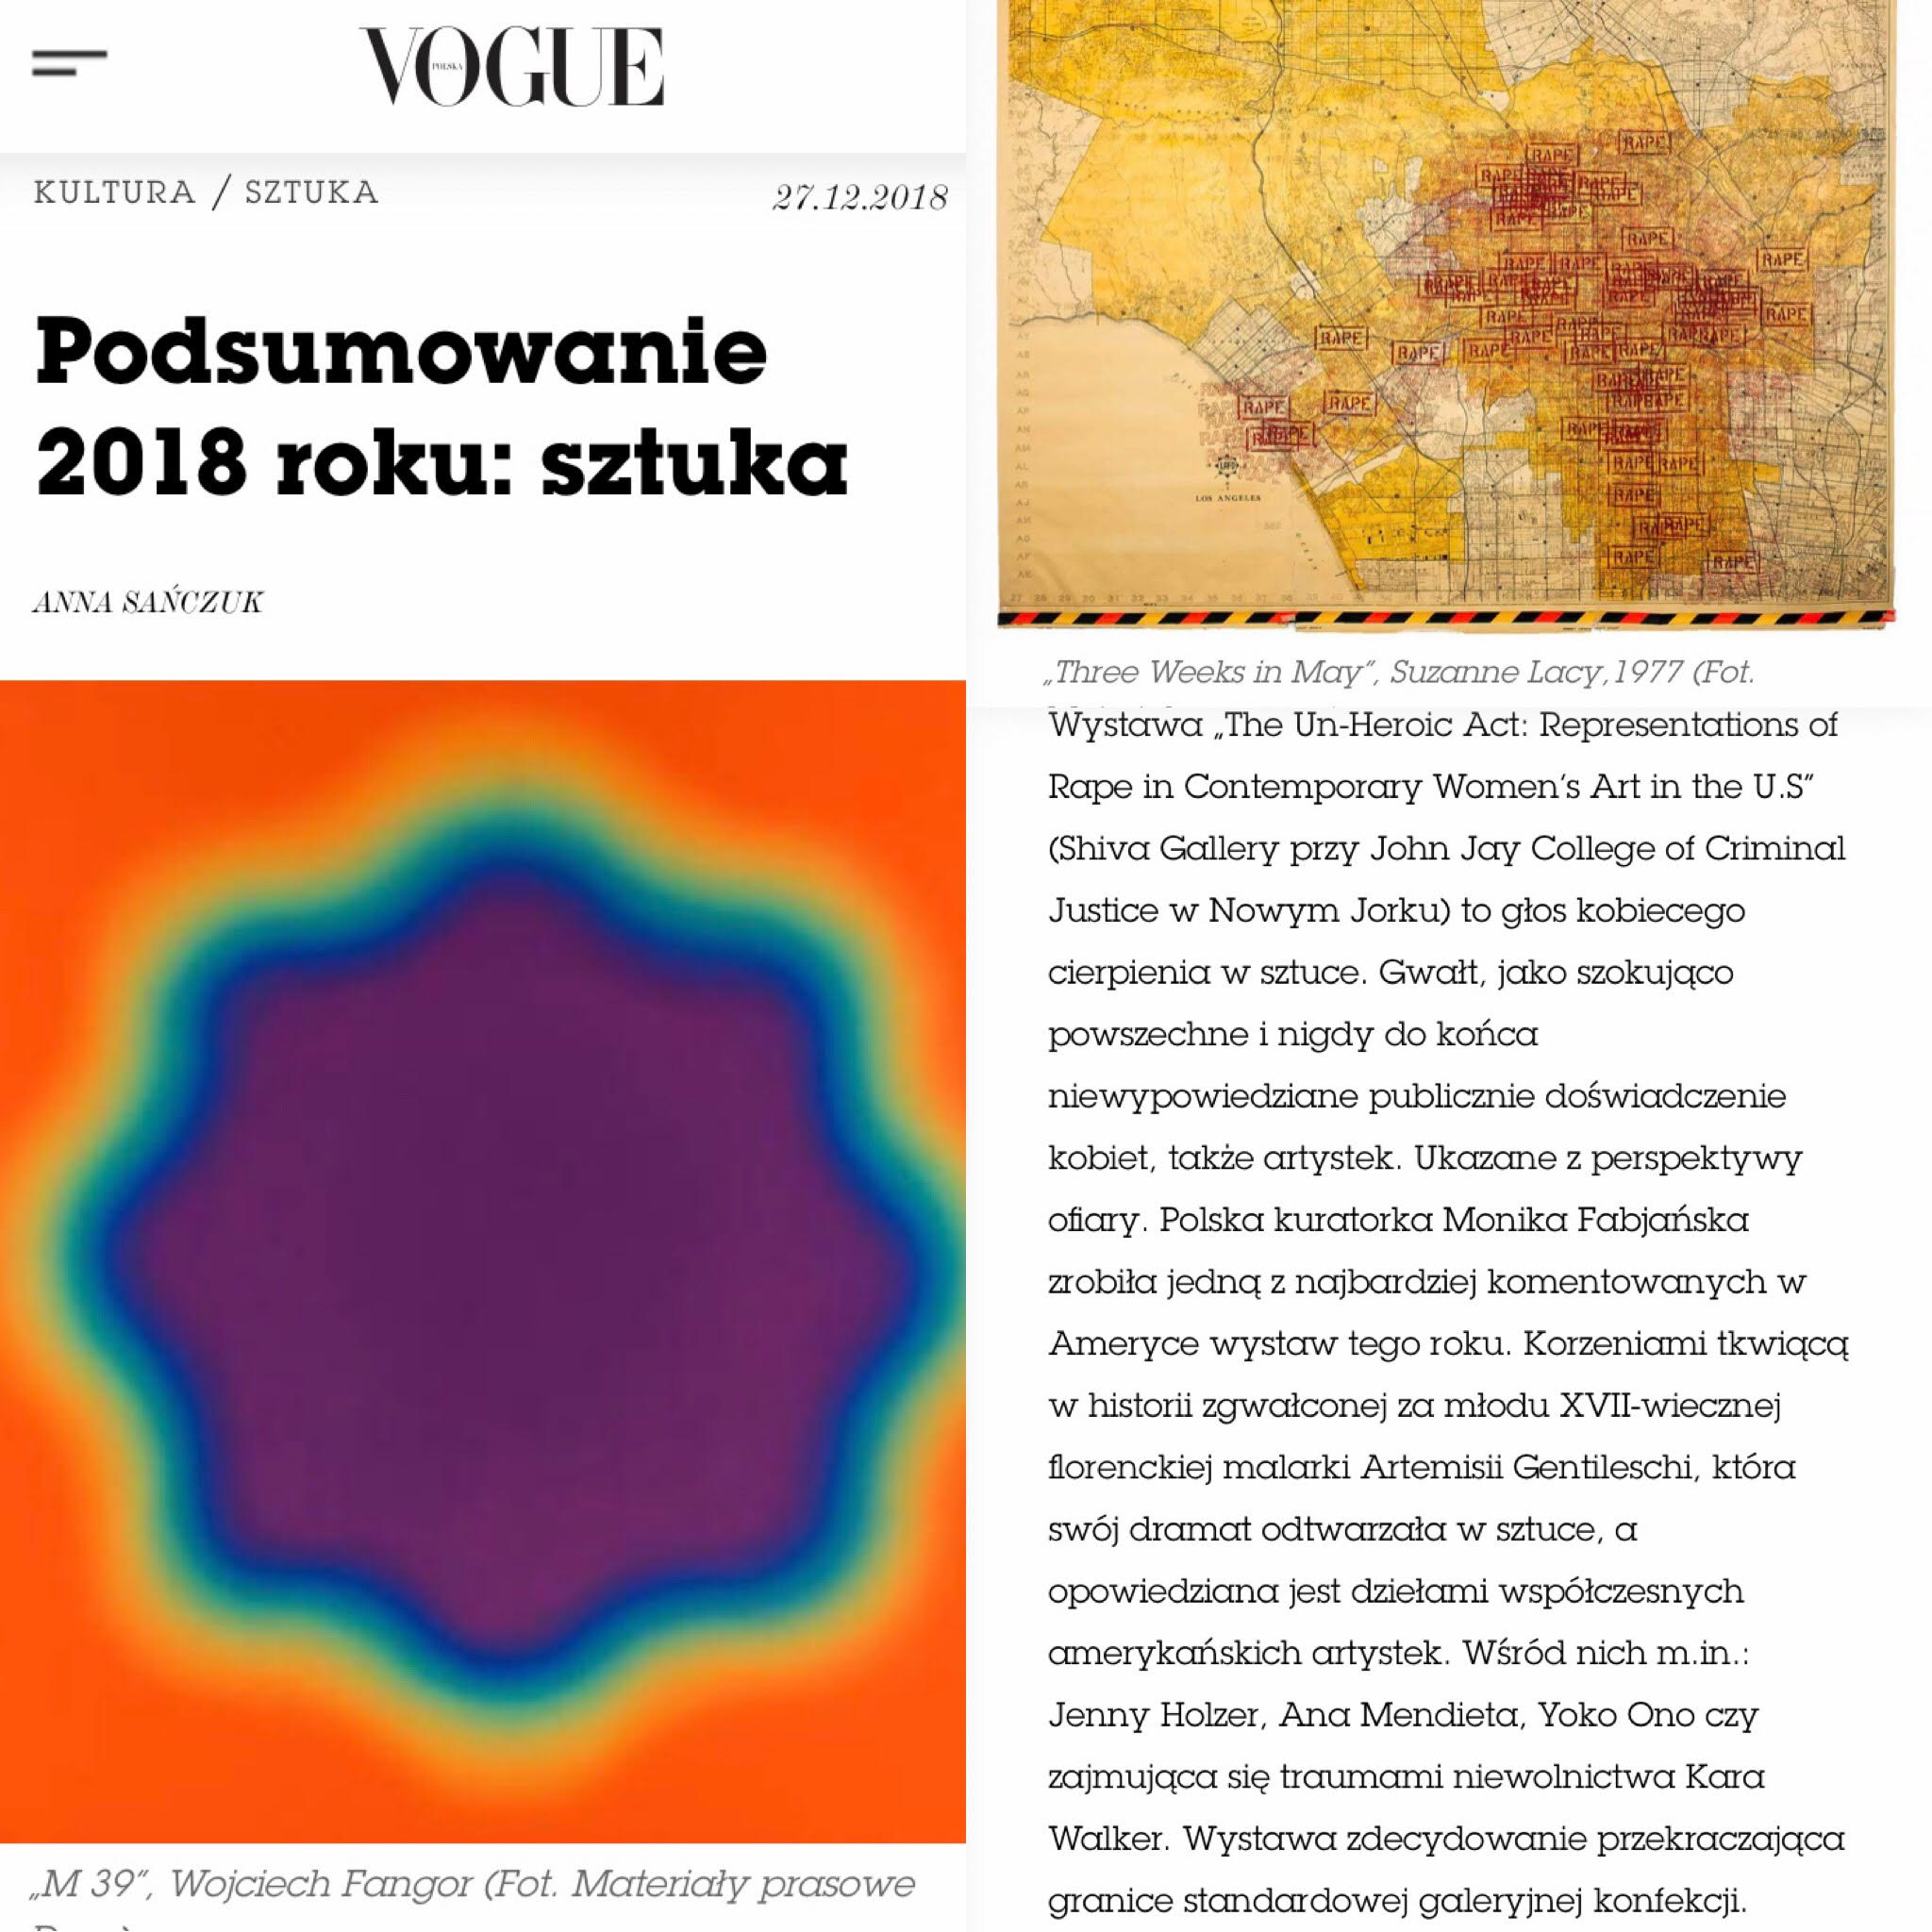 Vogue Polska_combined1.jpg